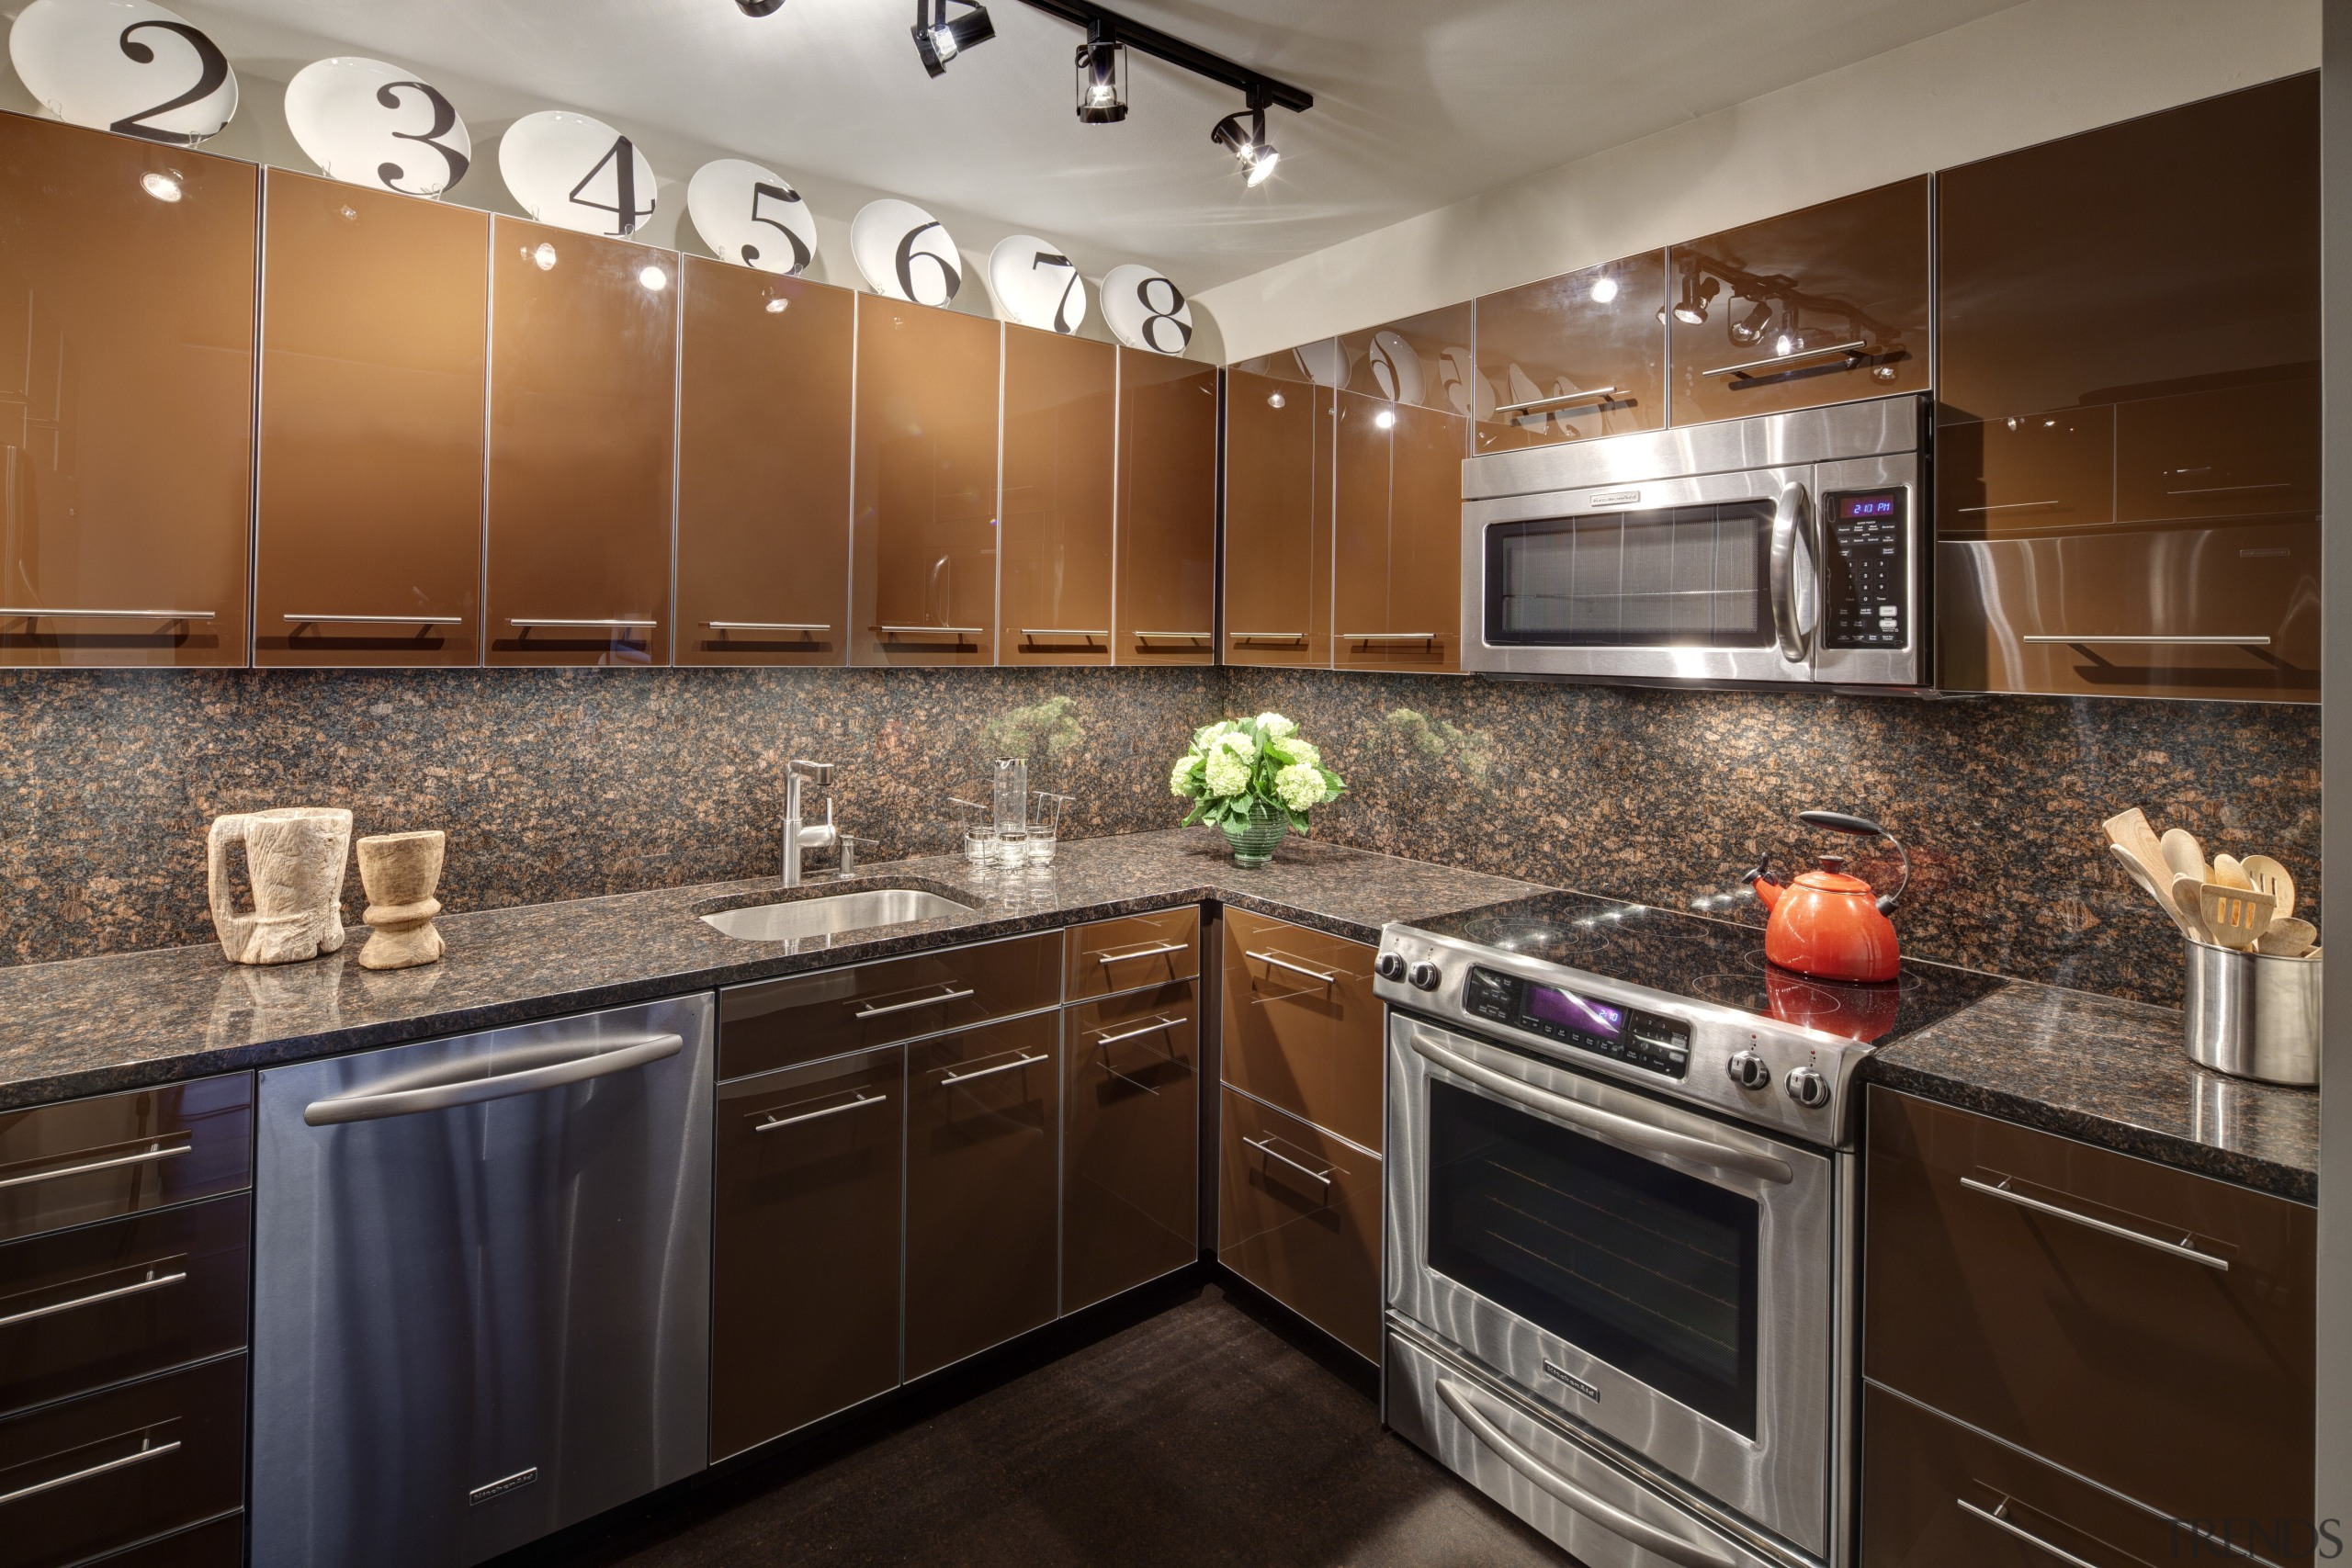 Contemporary apartment kitchen with reflective cabinetry and brown cabinetry, countertop, cuisine classique, flooring, hardwood, home, interior design, kitchen, room, under cabinet lighting, brown, gray